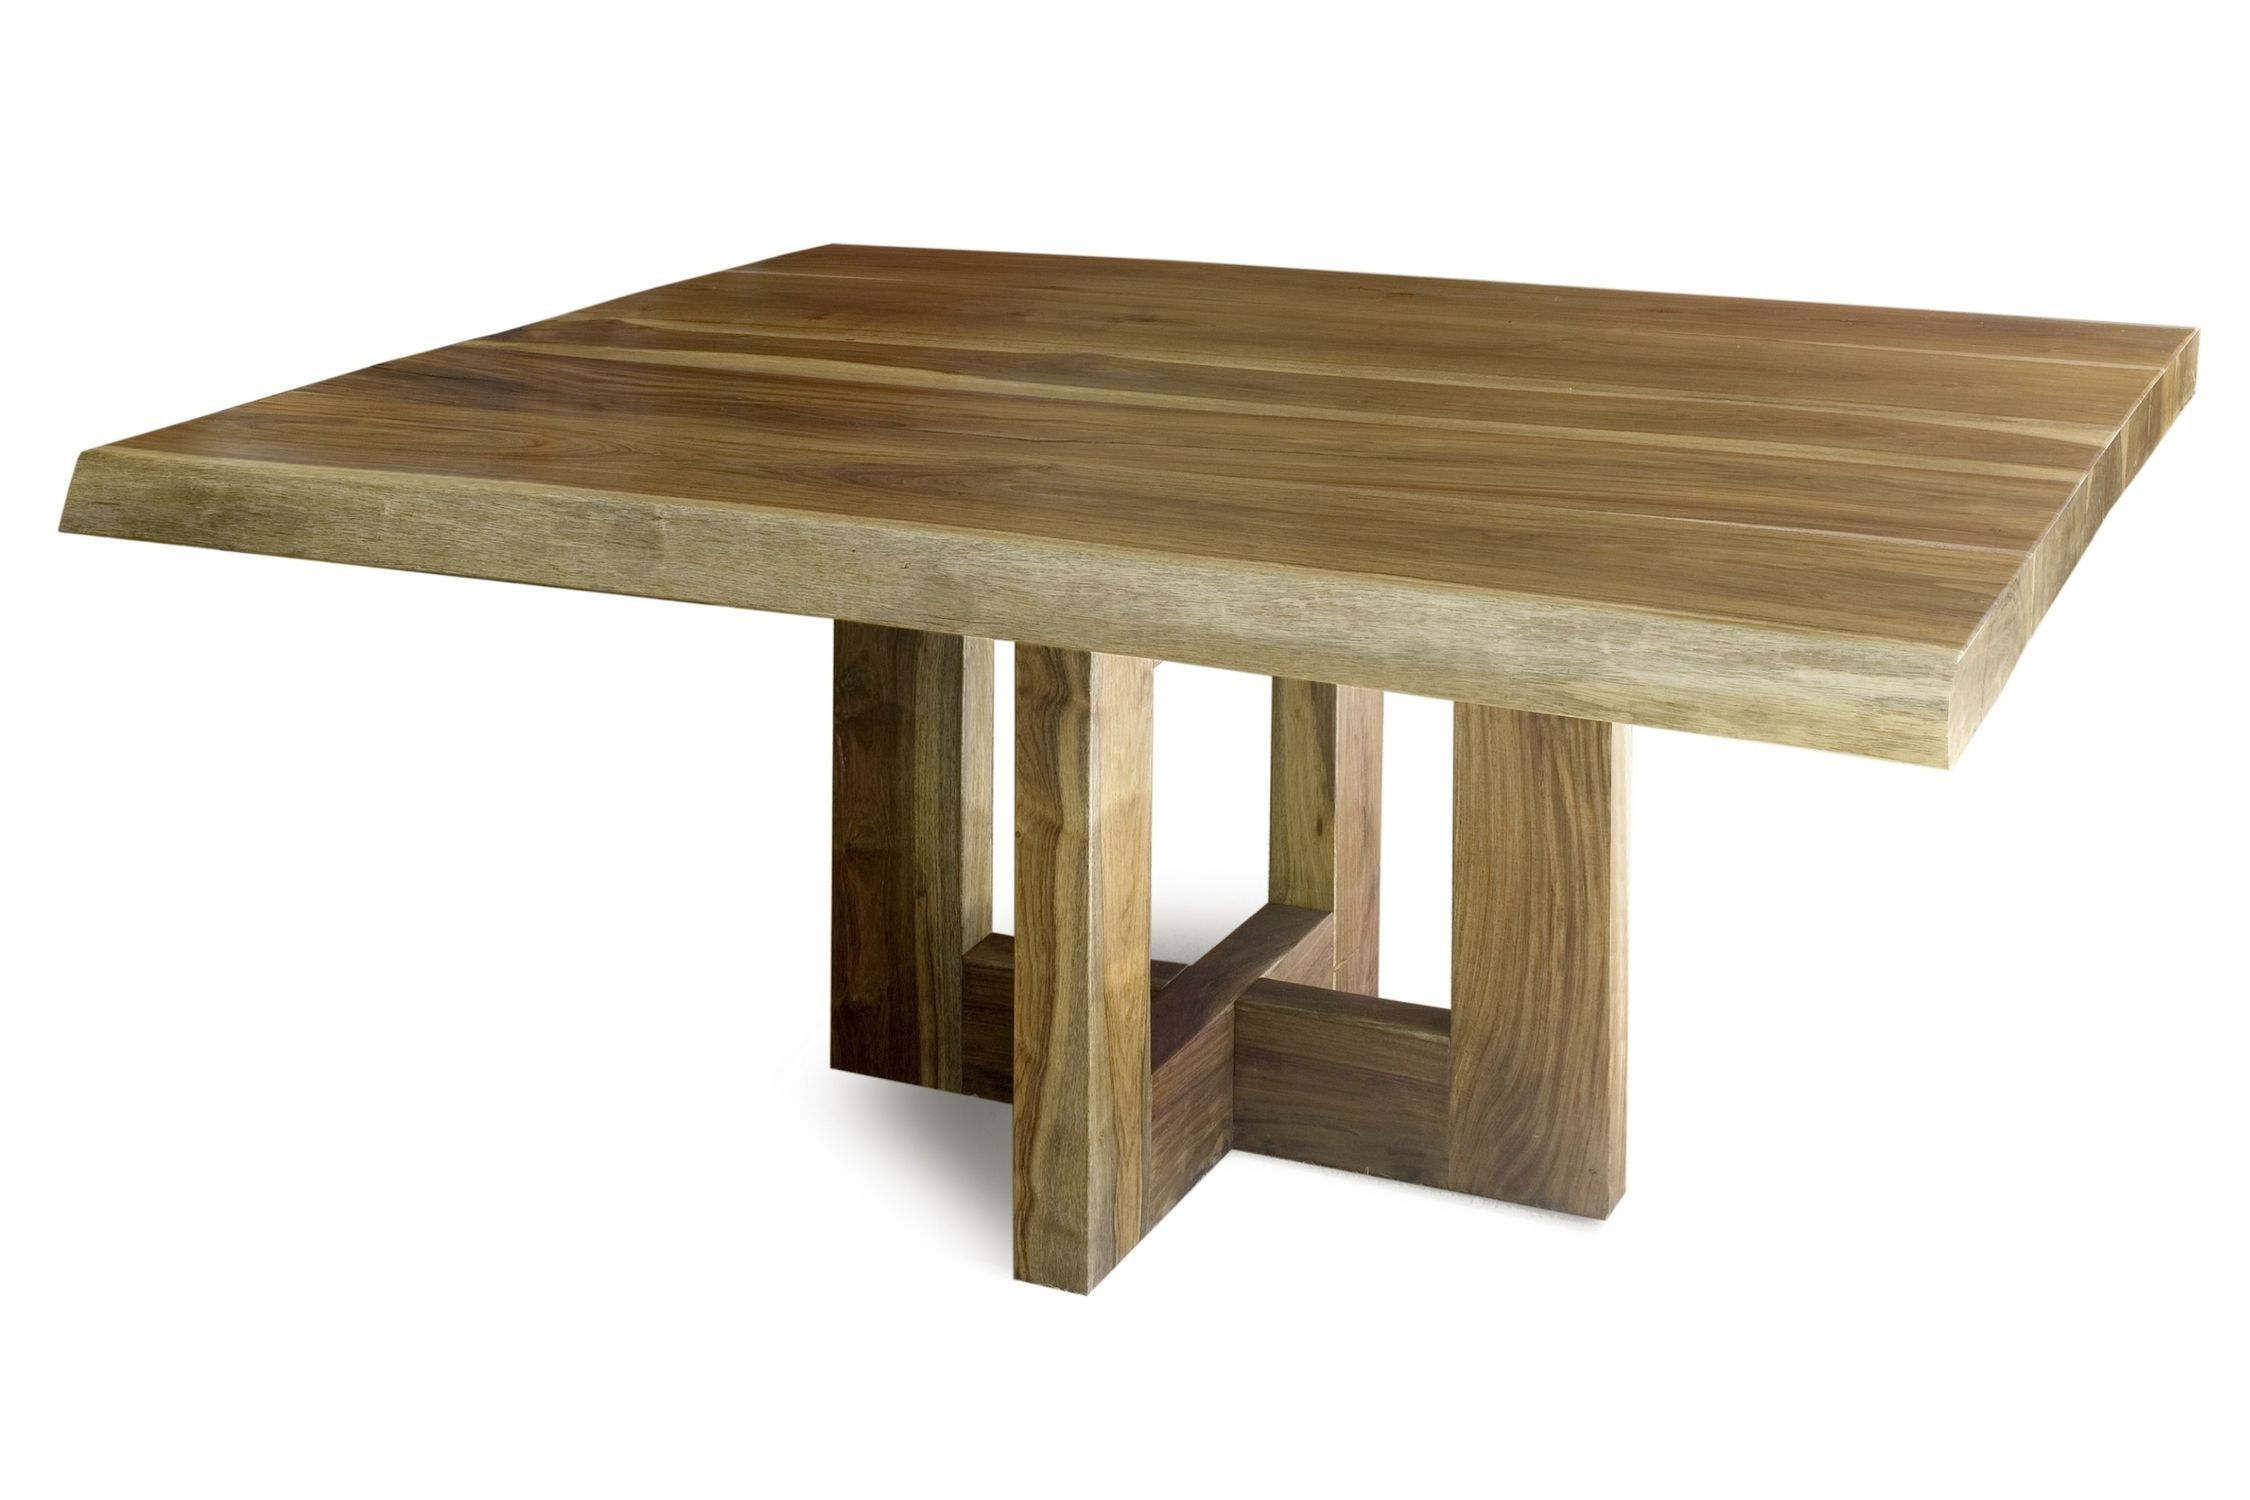 Nice Contemporary Rectangle Unfinished Reclaimed Wood Table For Inspiring Coffee  Table With Handmade Wooden Table Designs